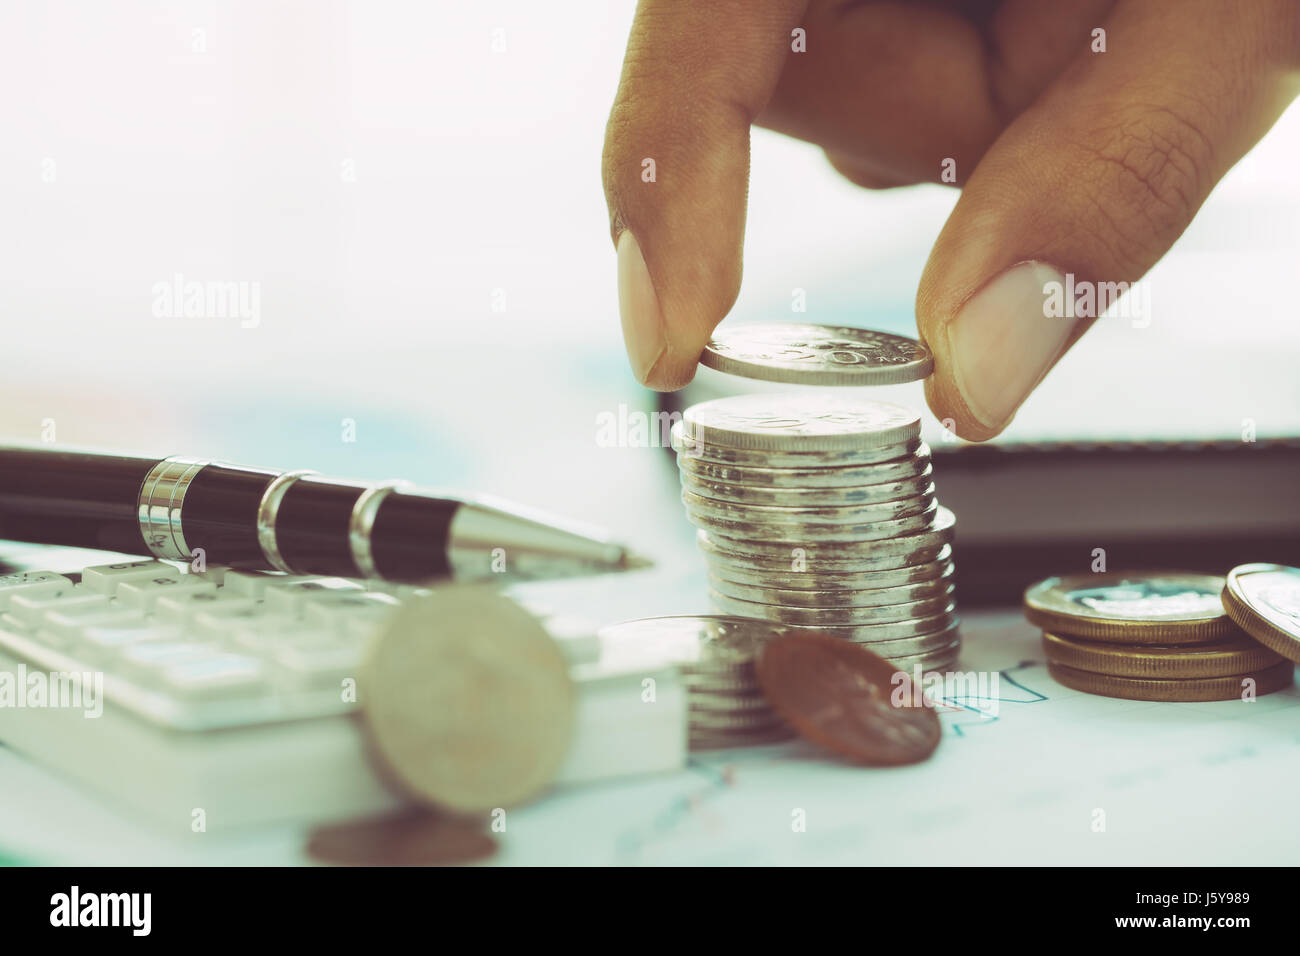 Hand putting coin on stack of coins with calculator and pen - Stock Image